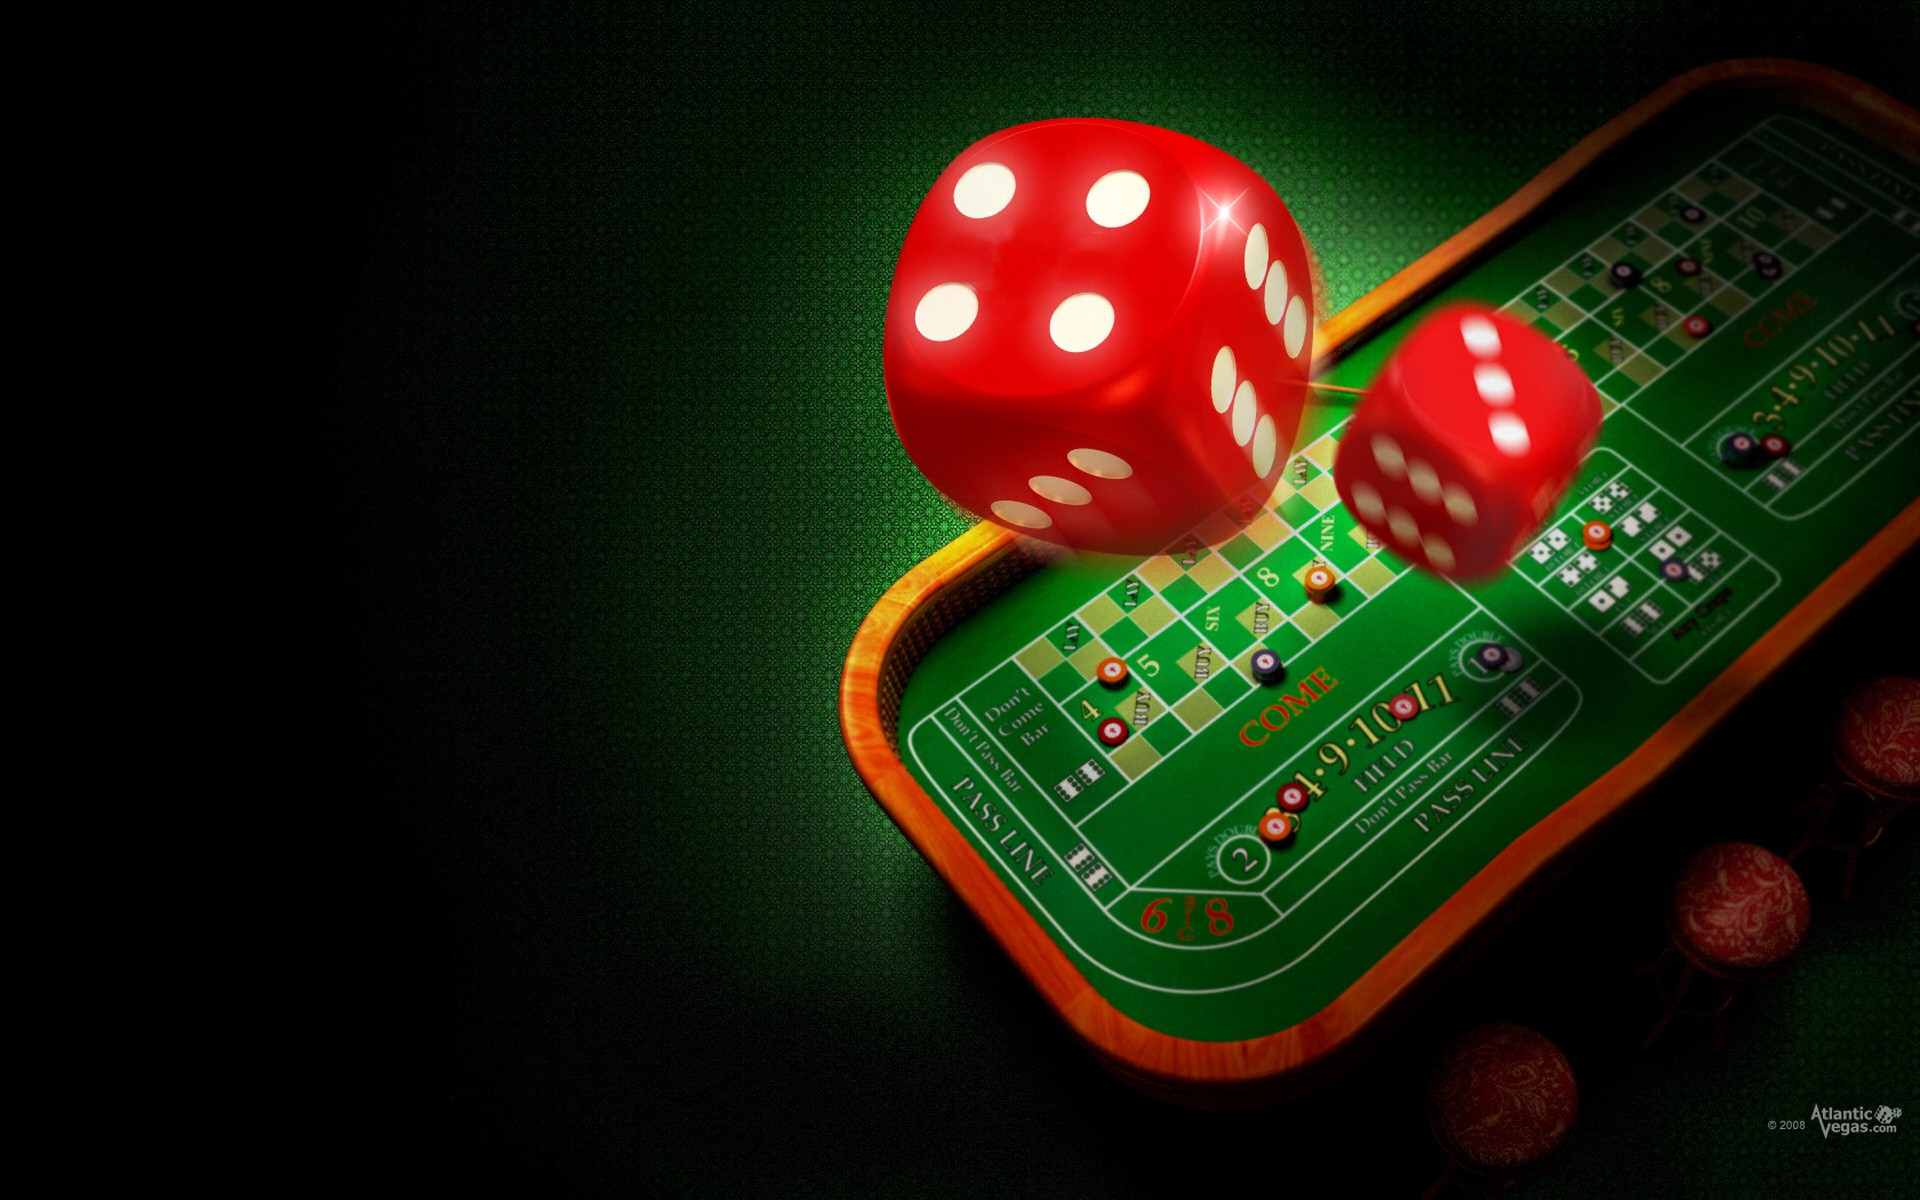 How Environment-friendly Is Your Casino?